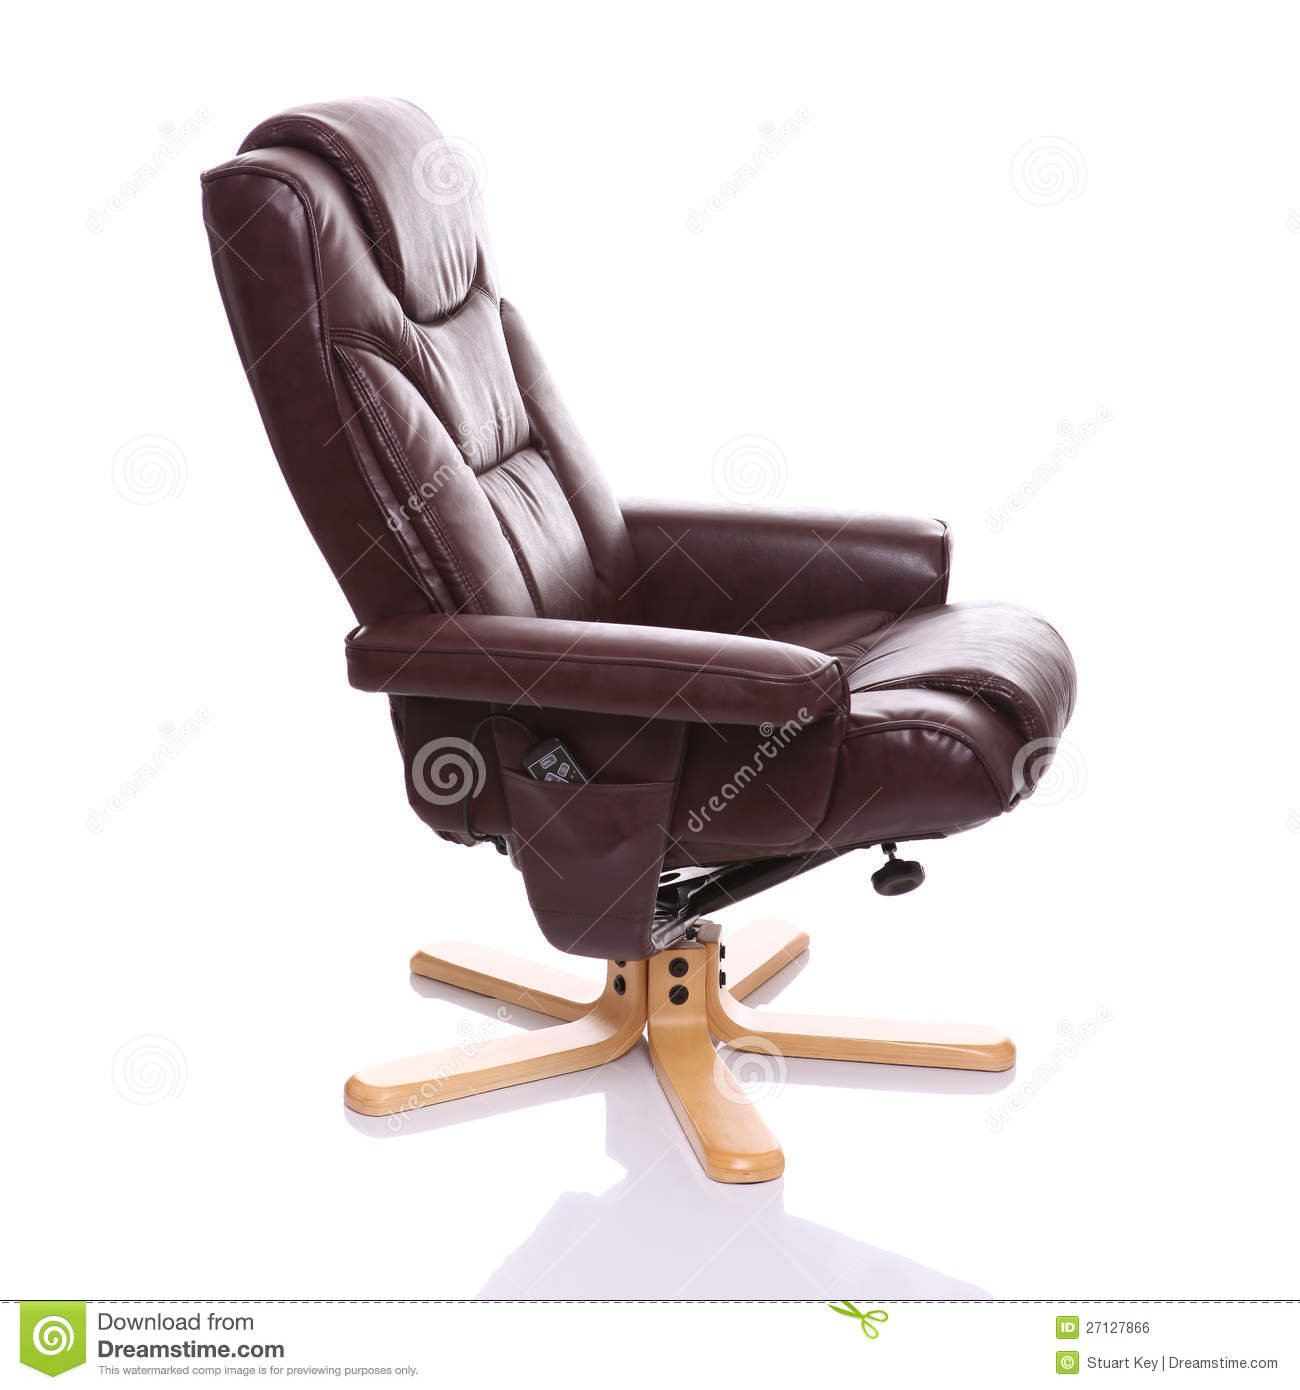 brown chair heated isolated leather legs pads recliner ...  sc 1 st  Dreamstime.com & Brown Leather Recliner Chair Royalty Free Stock Image - Image ... islam-shia.org